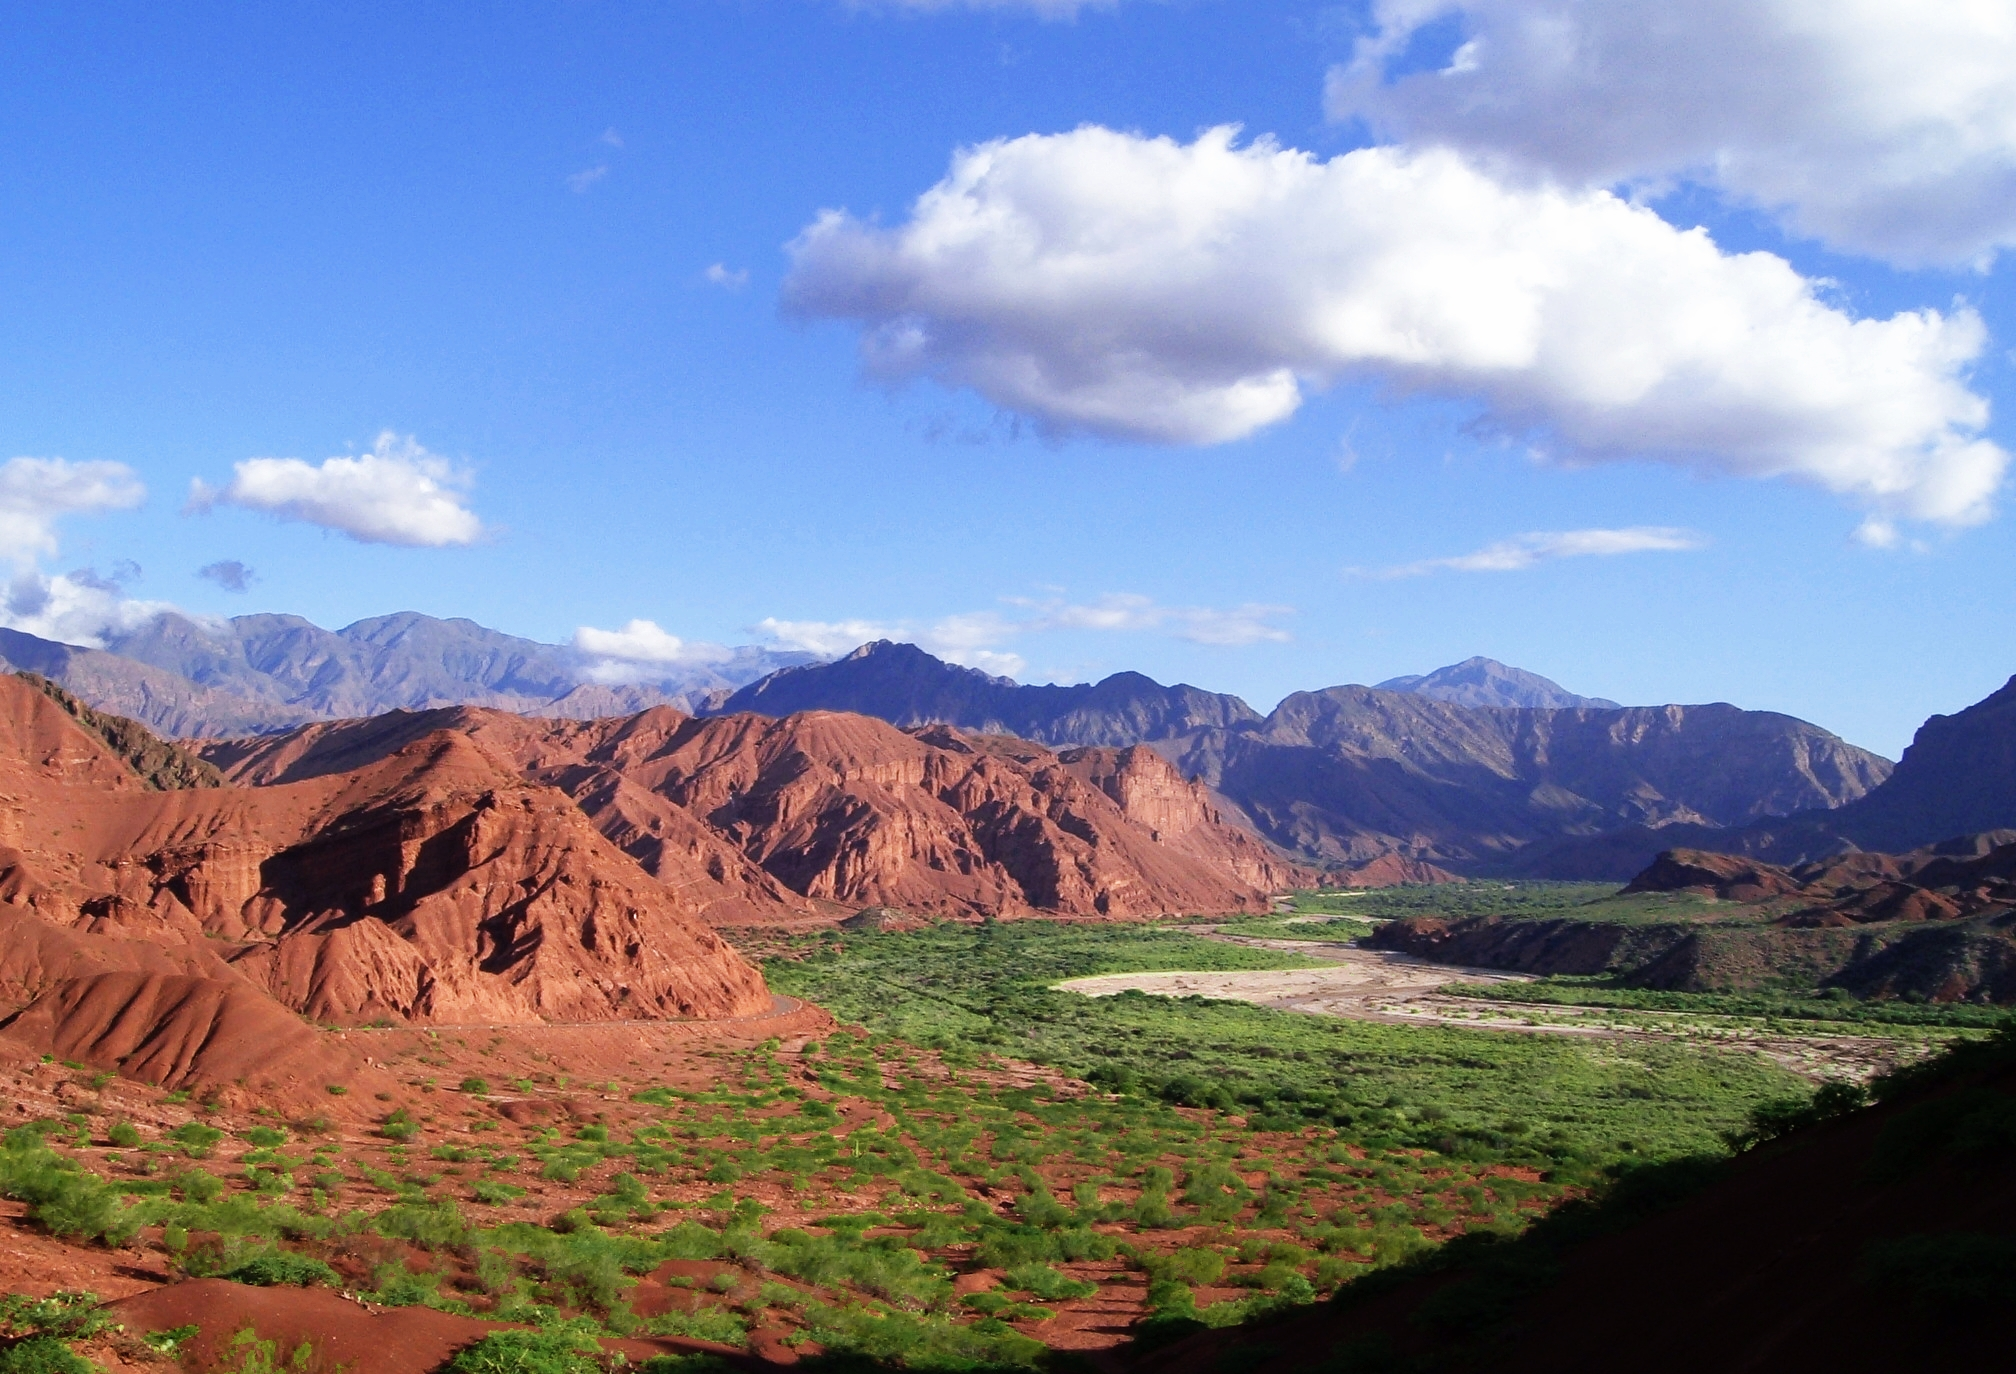 Salta Argentina  city pictures gallery : Cafayate Salta Argentina | Flickr Photo Sharing!